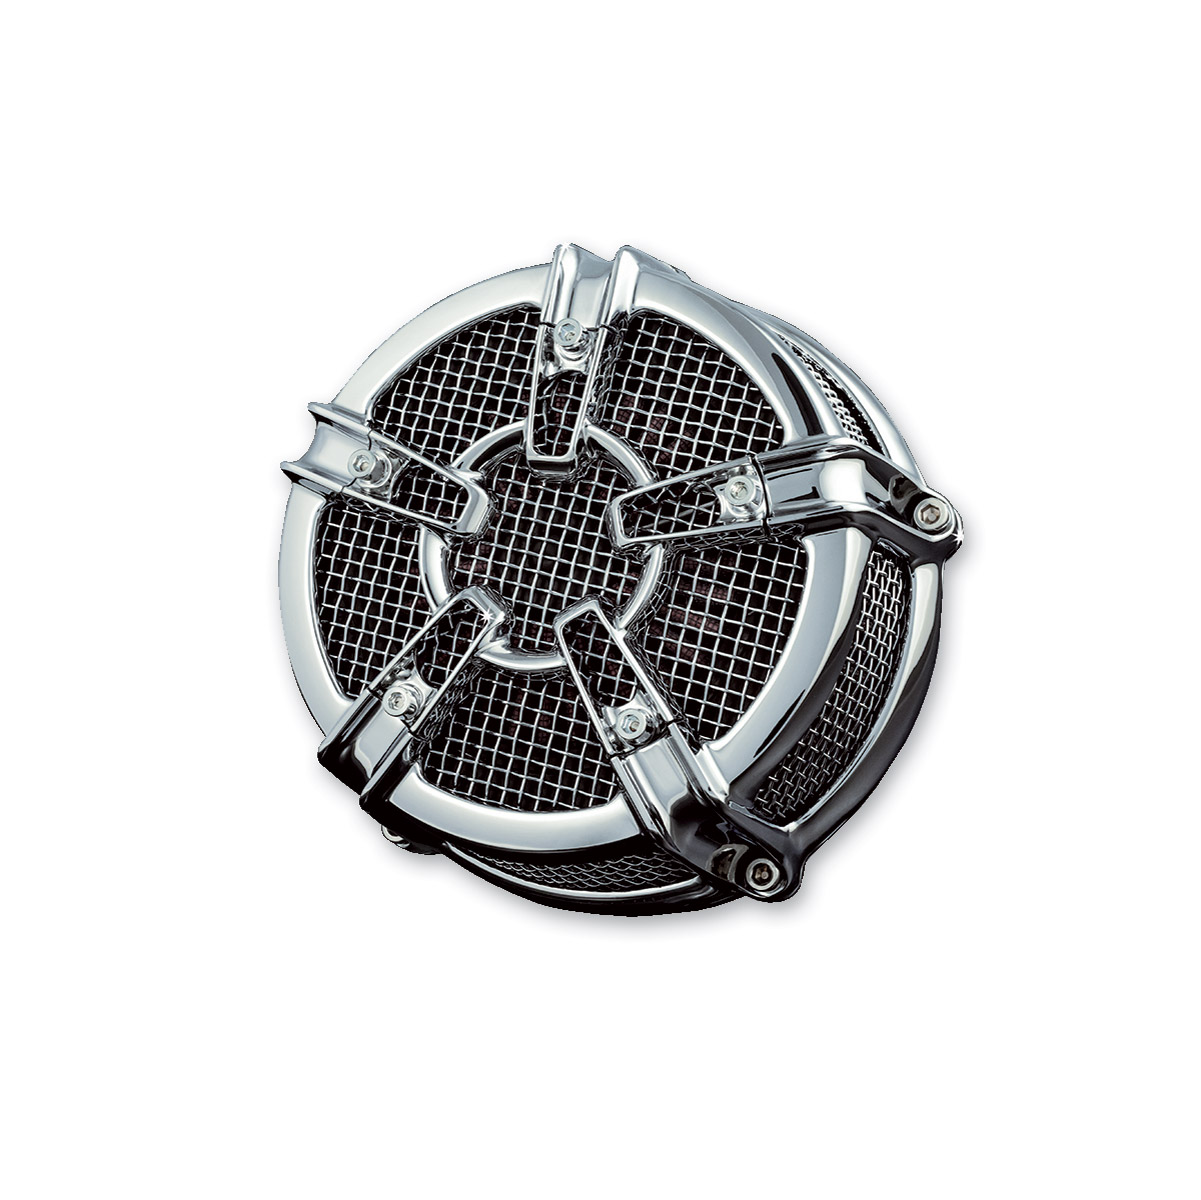 Kuryakyn Mach 2 Co-Ax Air Cleaner Assembly Only